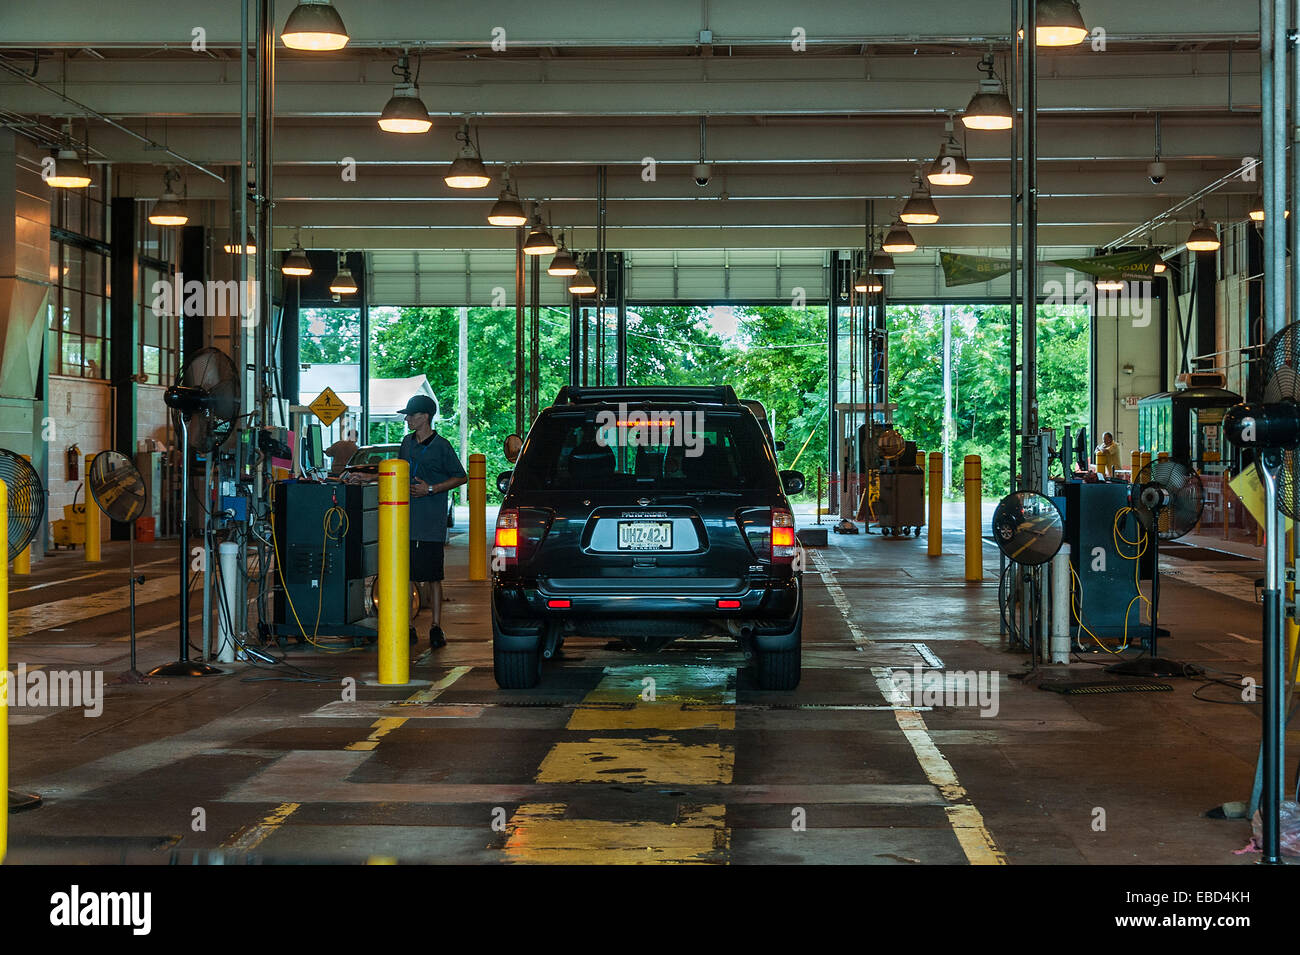 State auto inspection station, New Jersey, USA - Stock Image